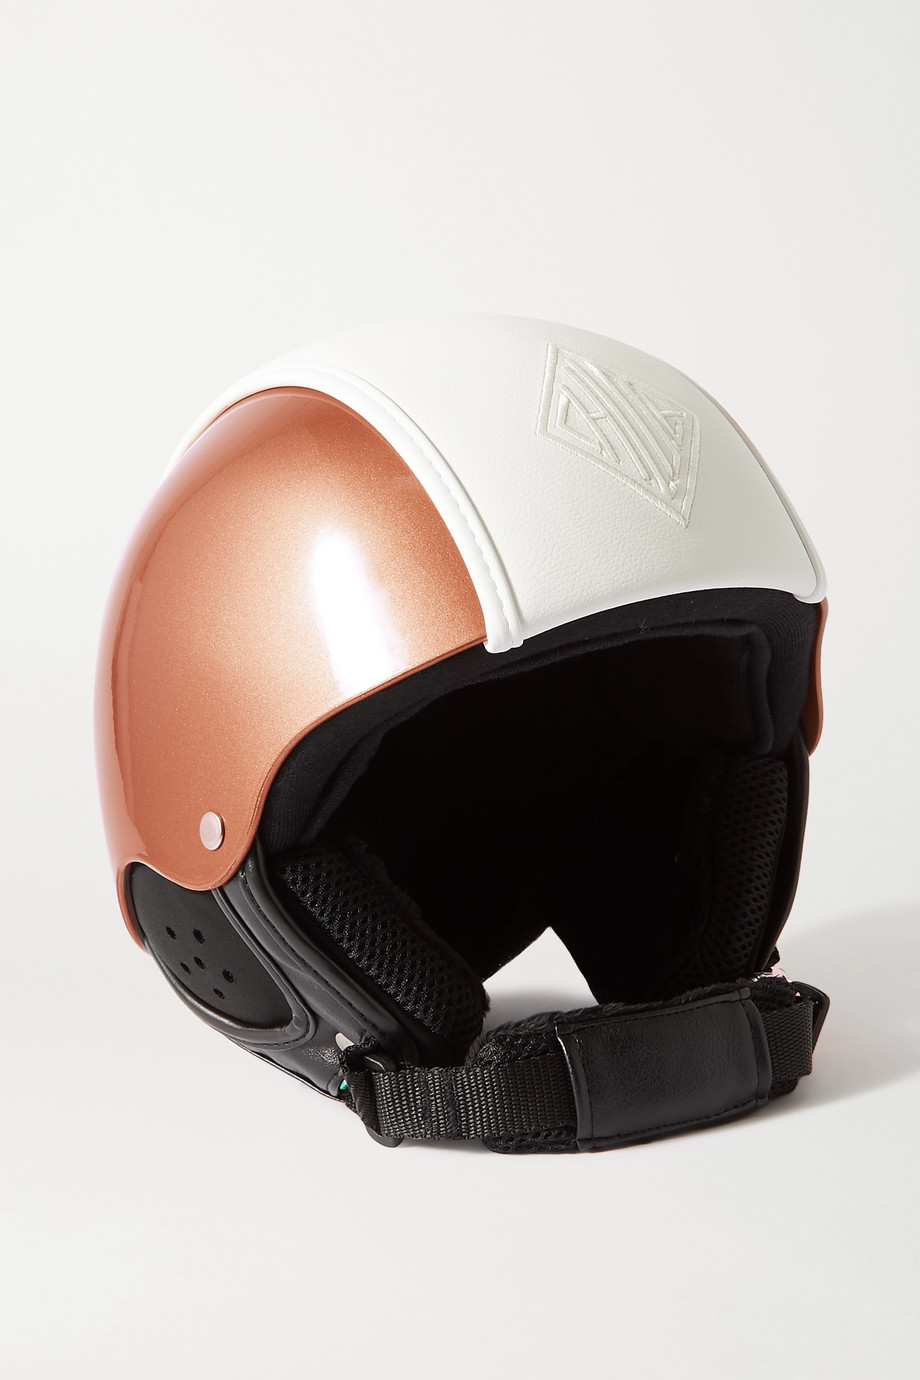 Chloé + Fusalp embroidered leather-paneled ski helmet